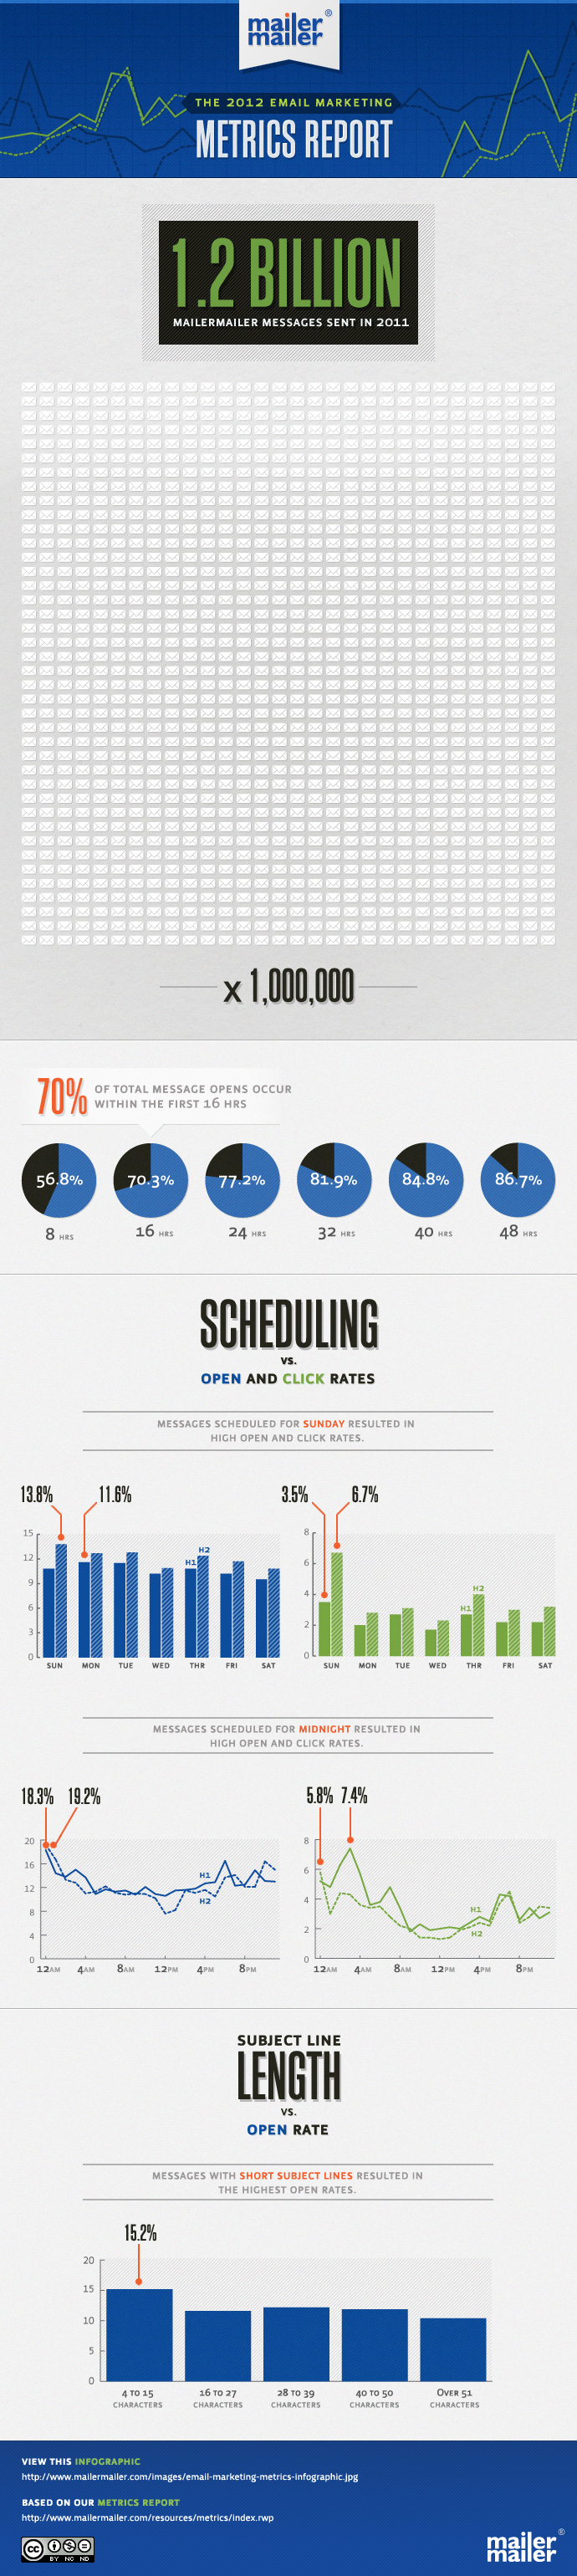 current-state-of-email-marketing-infographic_5033b1763b59d